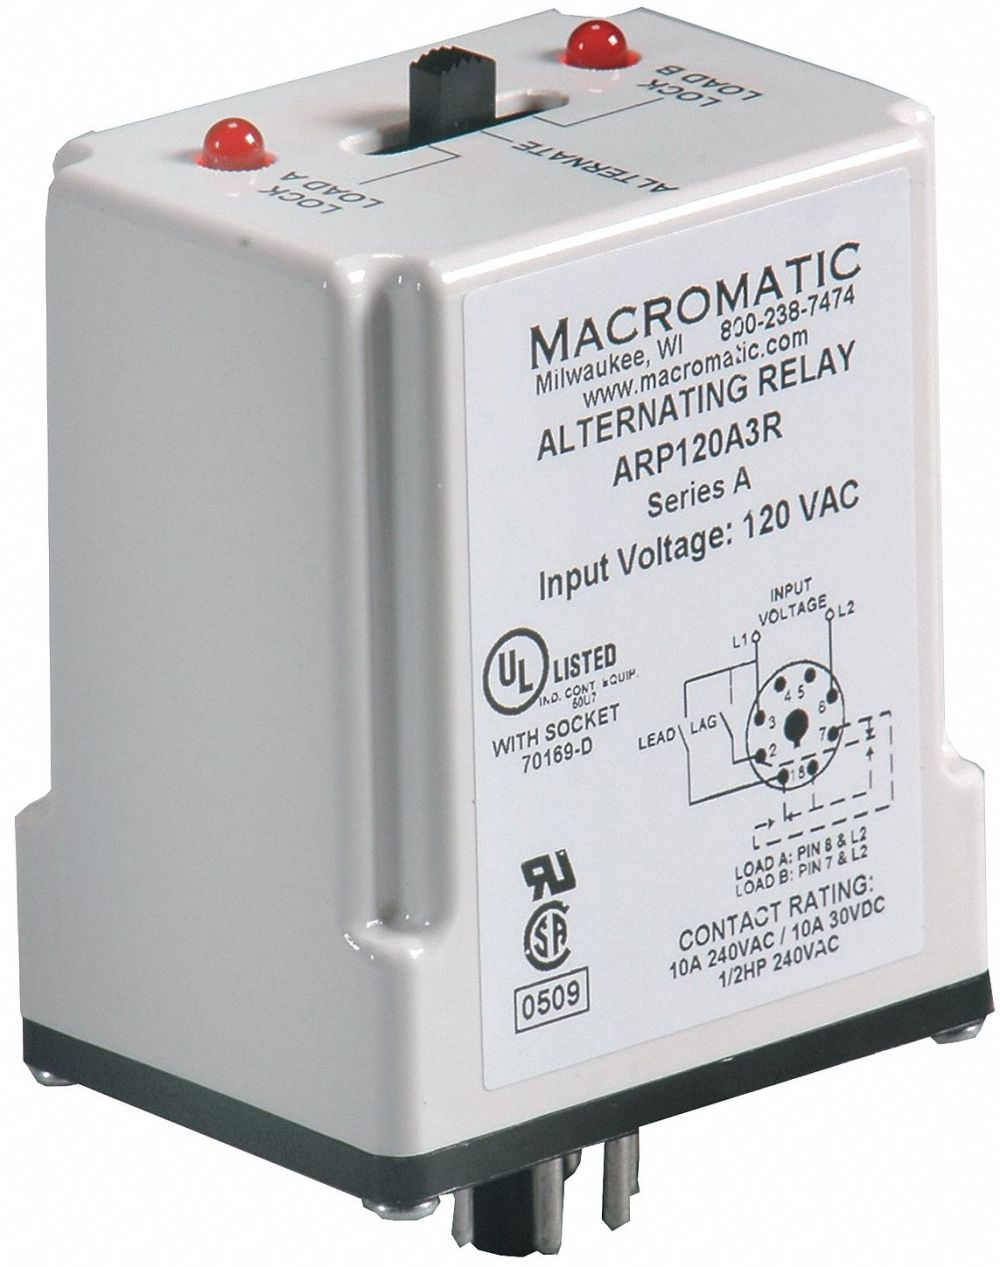 medium resolution of macromatic alternating relay 120vac 10a 240v 10a 28v octal base type 8 pins 3 0va dpdt cross wired 6mpn9 arp120a3r grainger